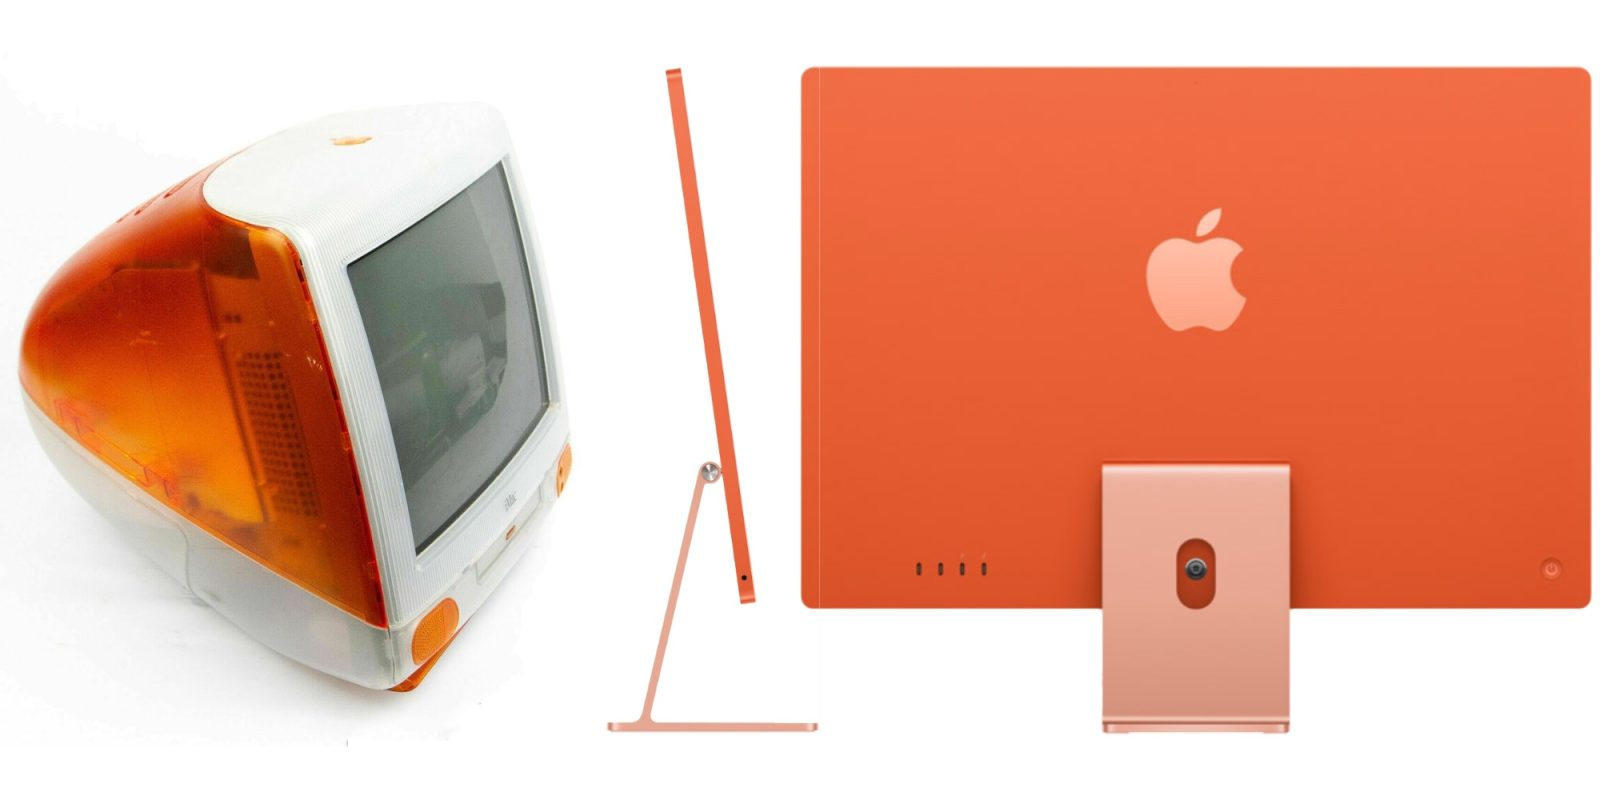 Comment: Apple's new colorful iMac lineup is a millennial dream come true